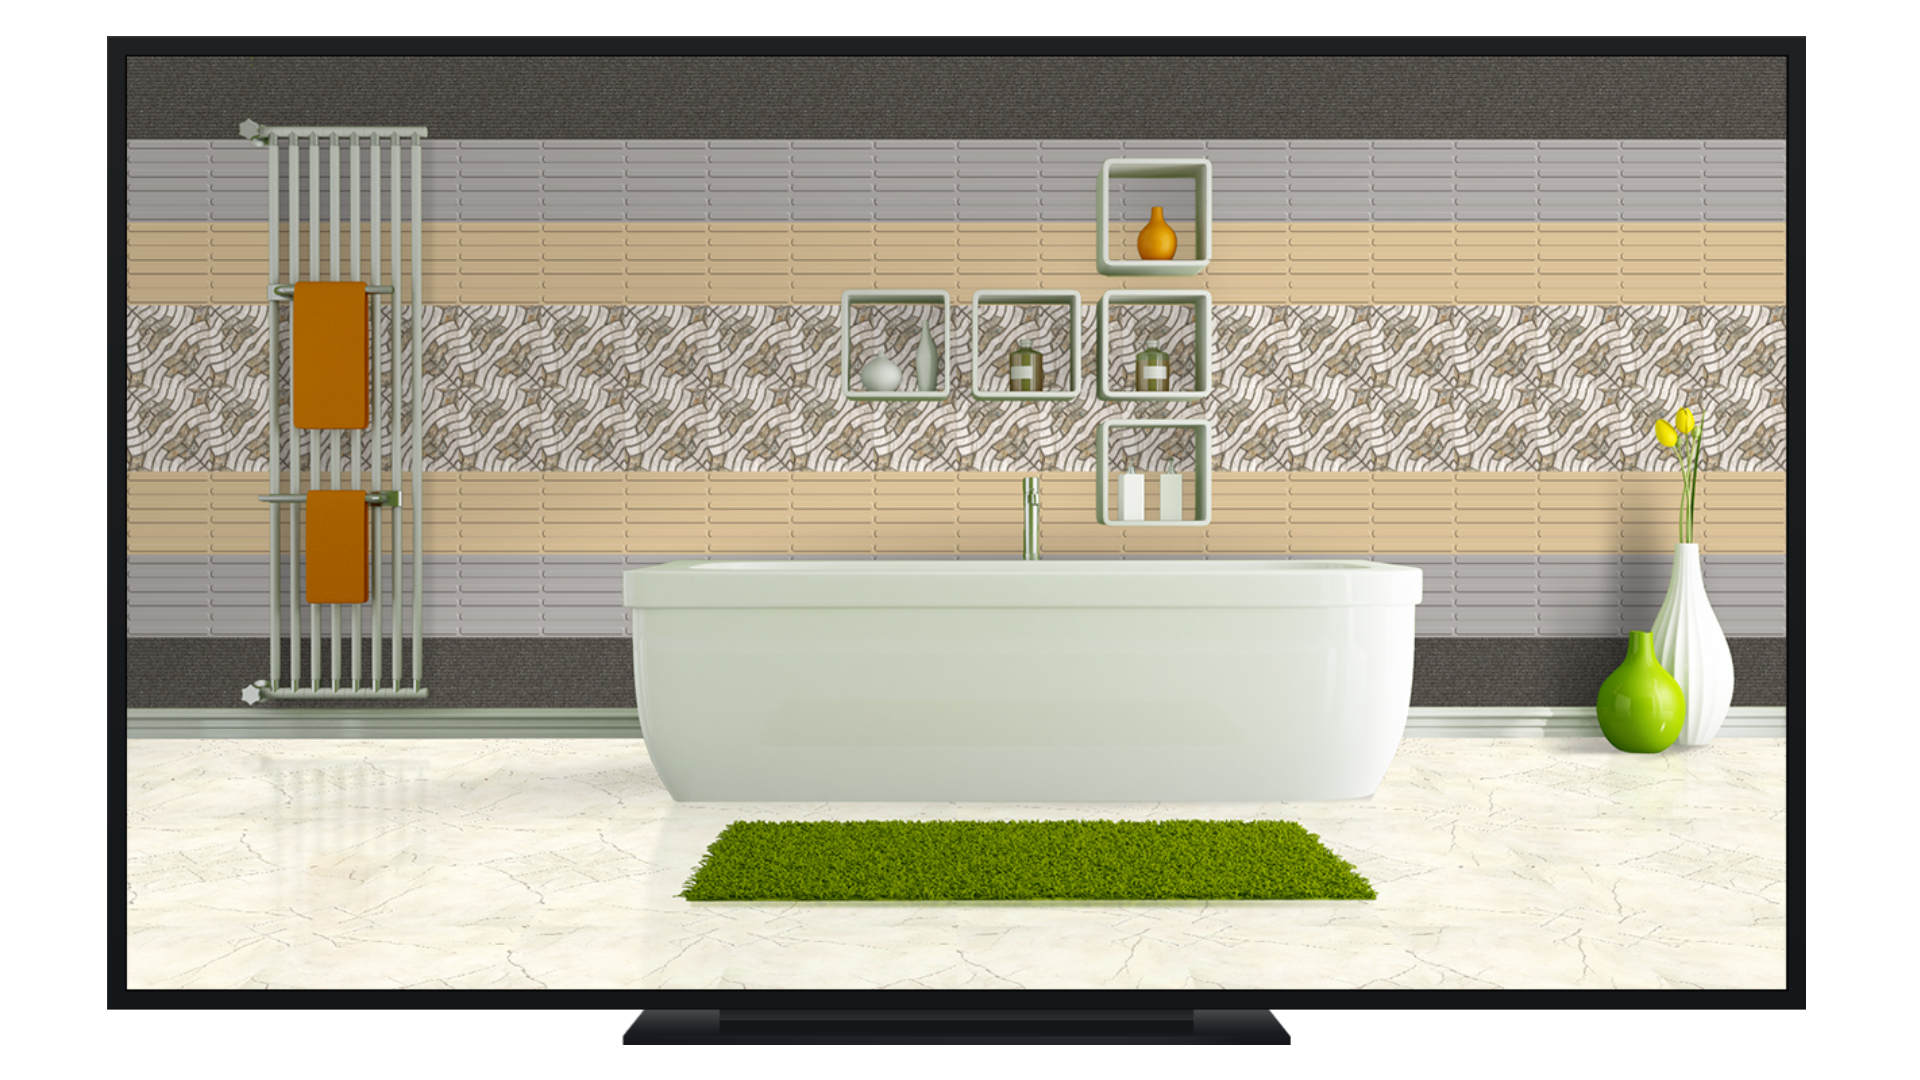 Tremendous Wall And Floor 3D Tile Visualizer And Bathroom Design Download Free Architecture Designs Scobabritishbridgeorg